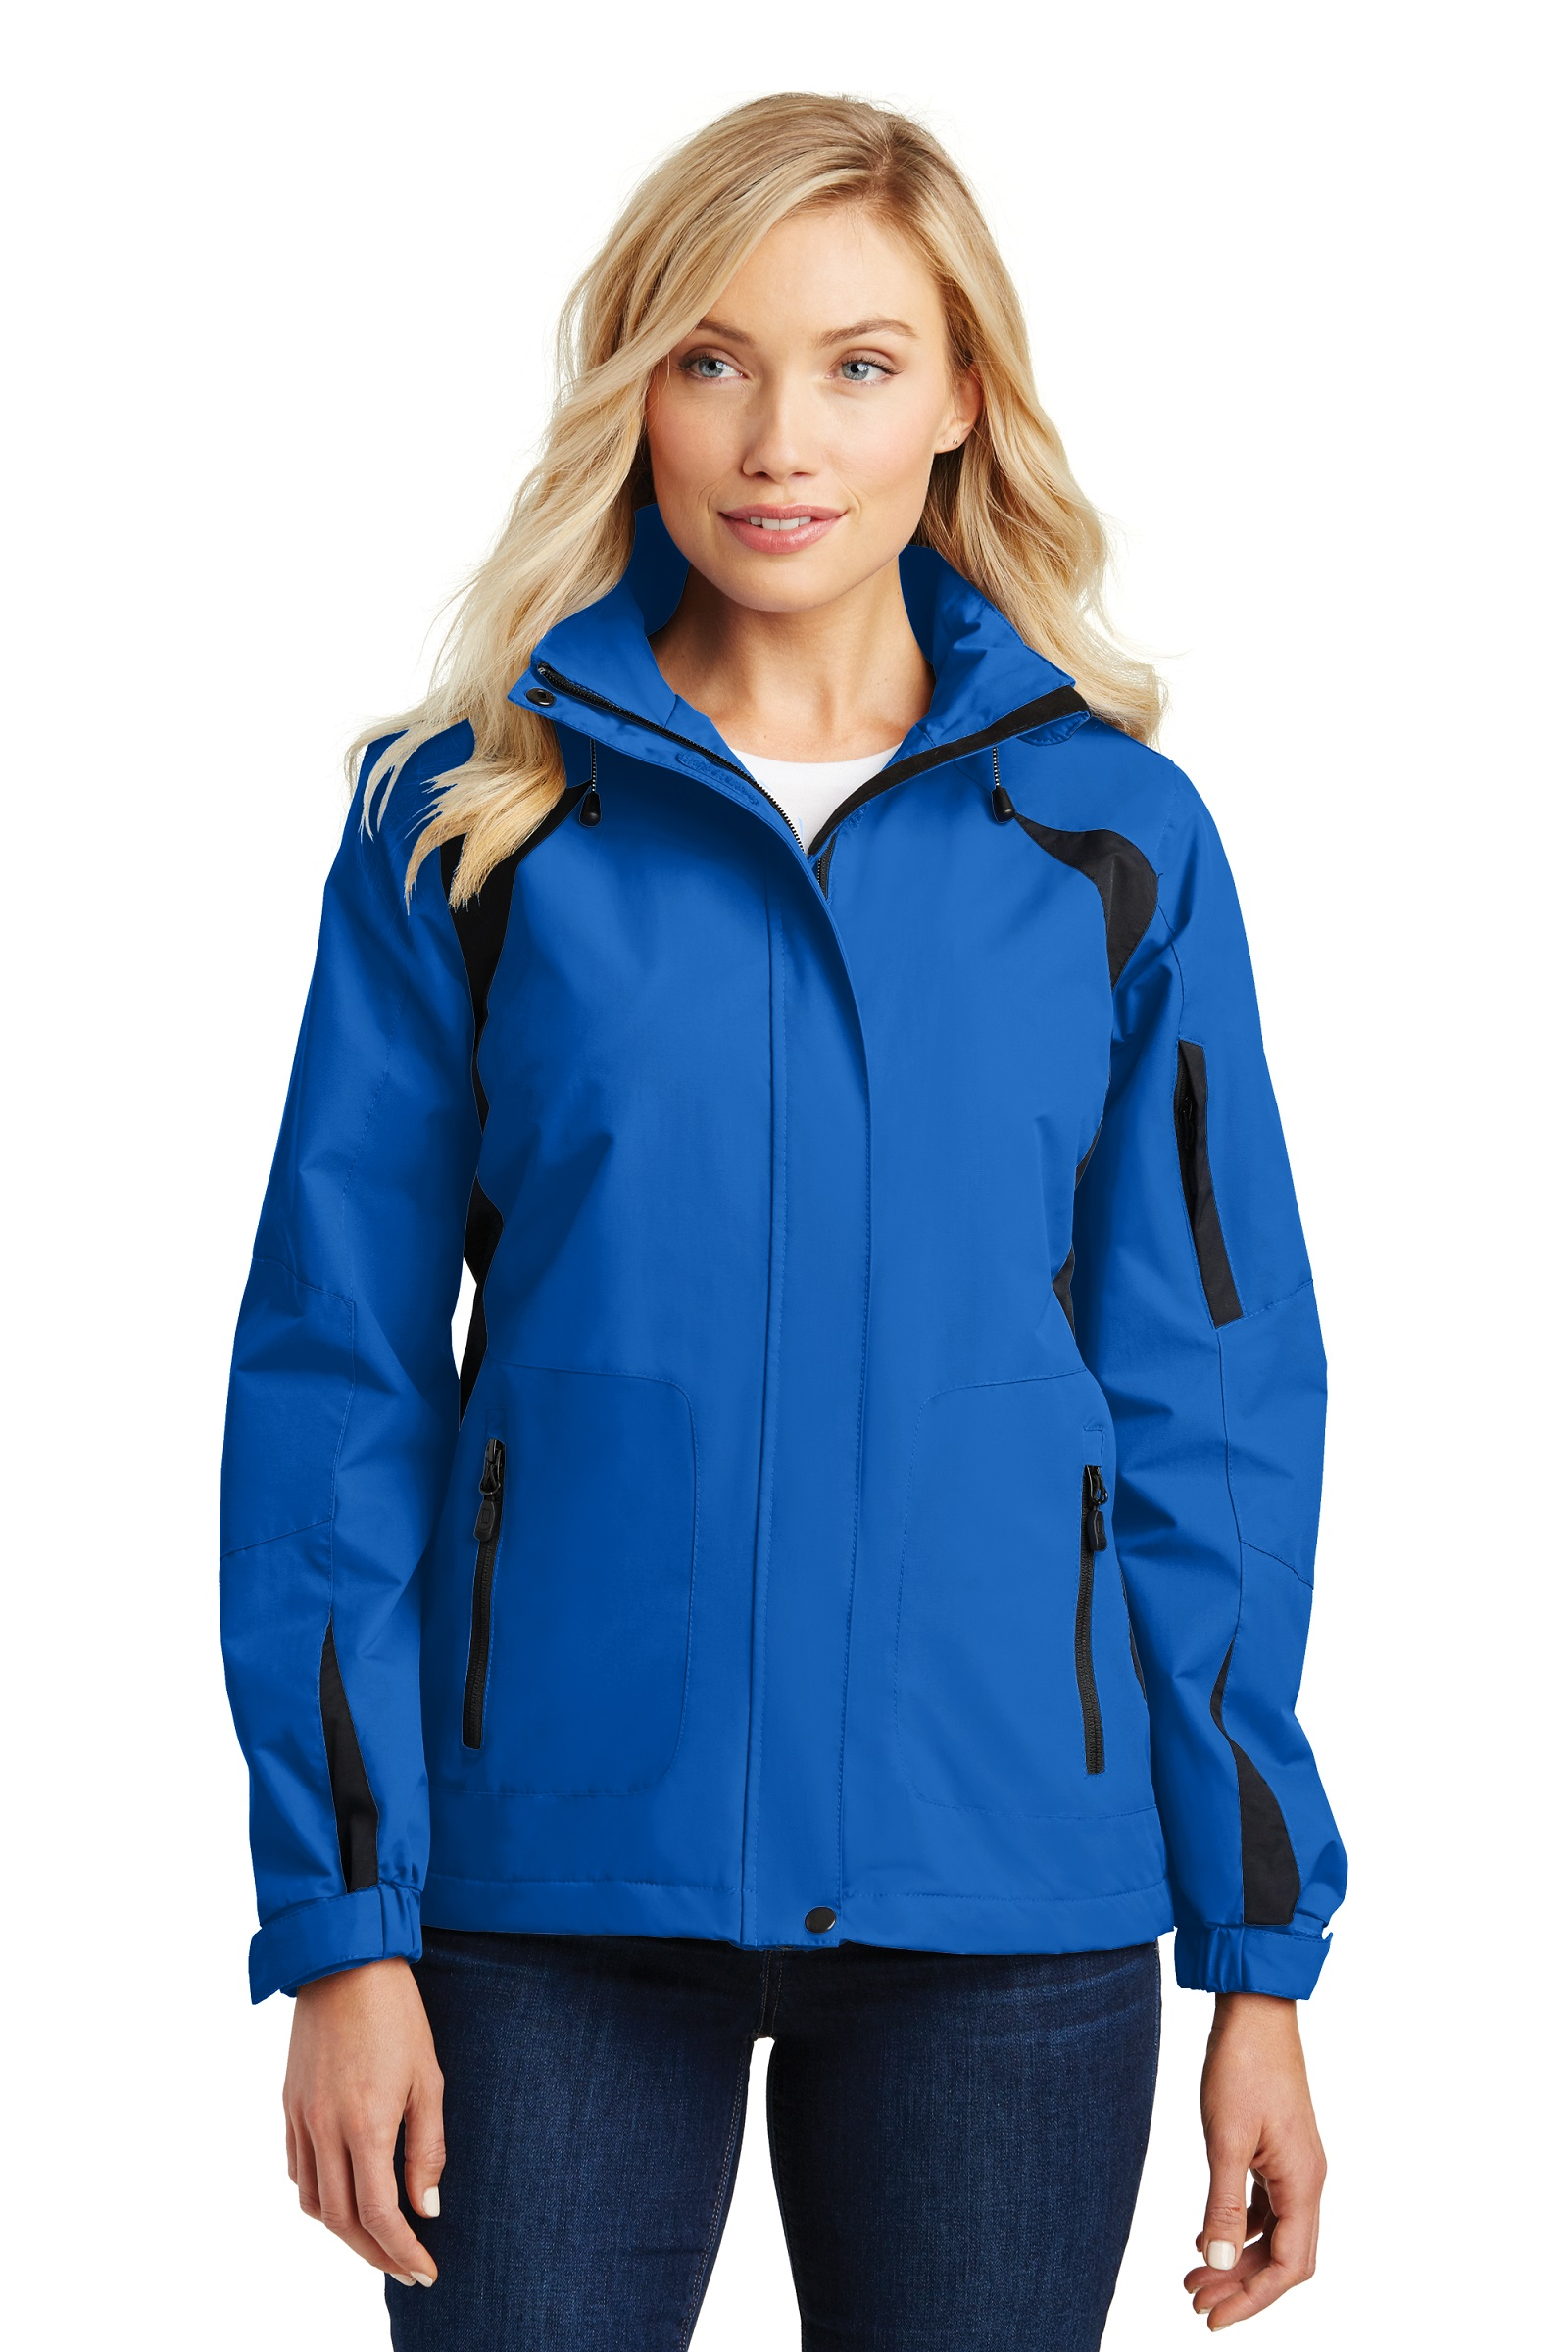 Port Authority  Embroidered Women's All-Season Jacket